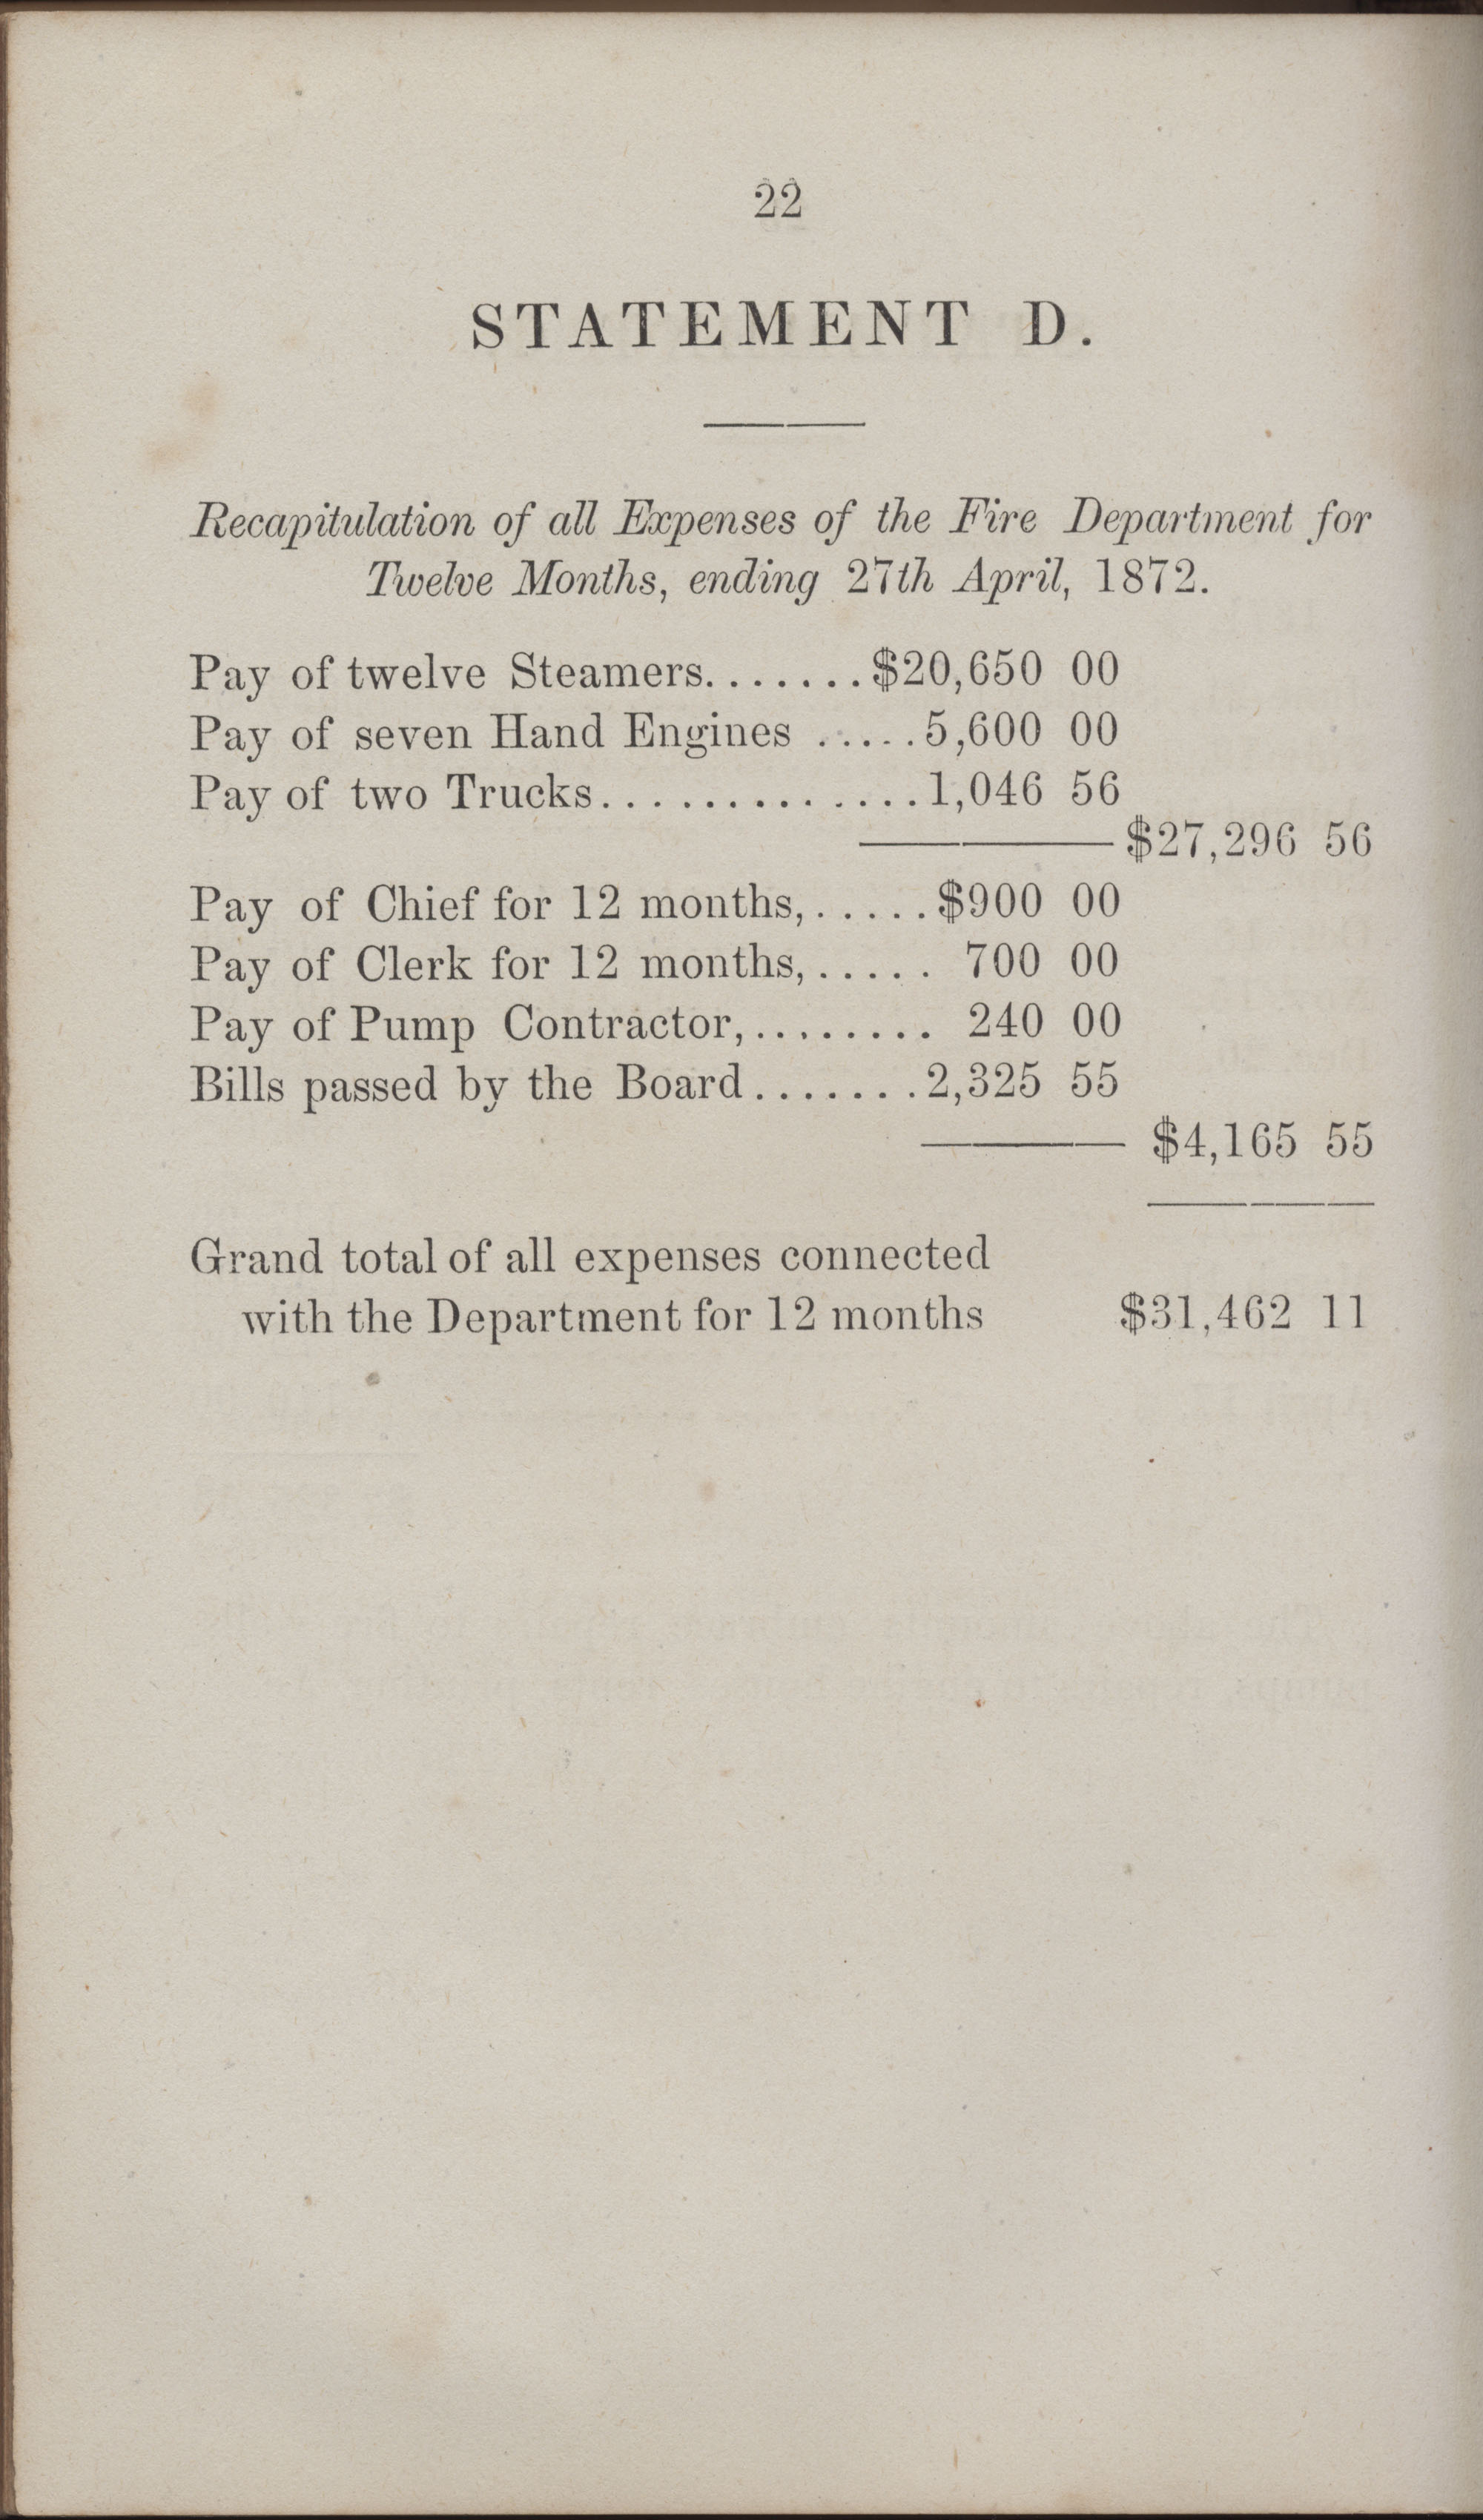 Annual Report of the Chief of the Fire Department of the City of Charleston, page 417